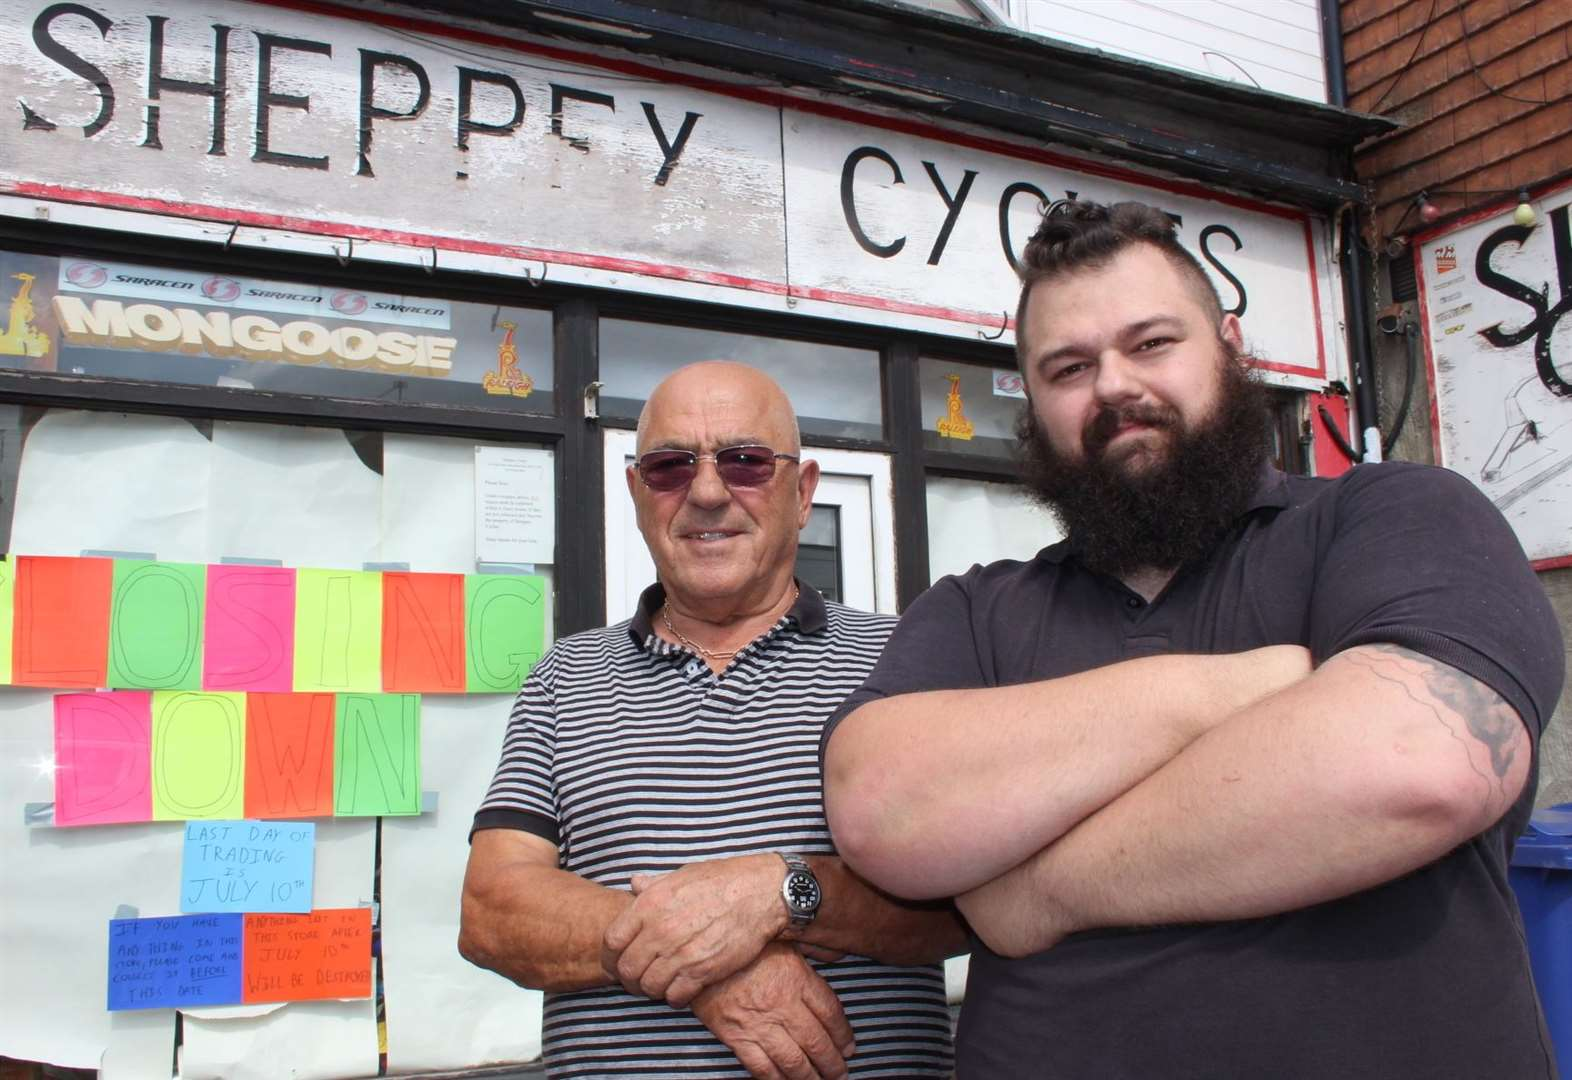 End of the road for bike shop